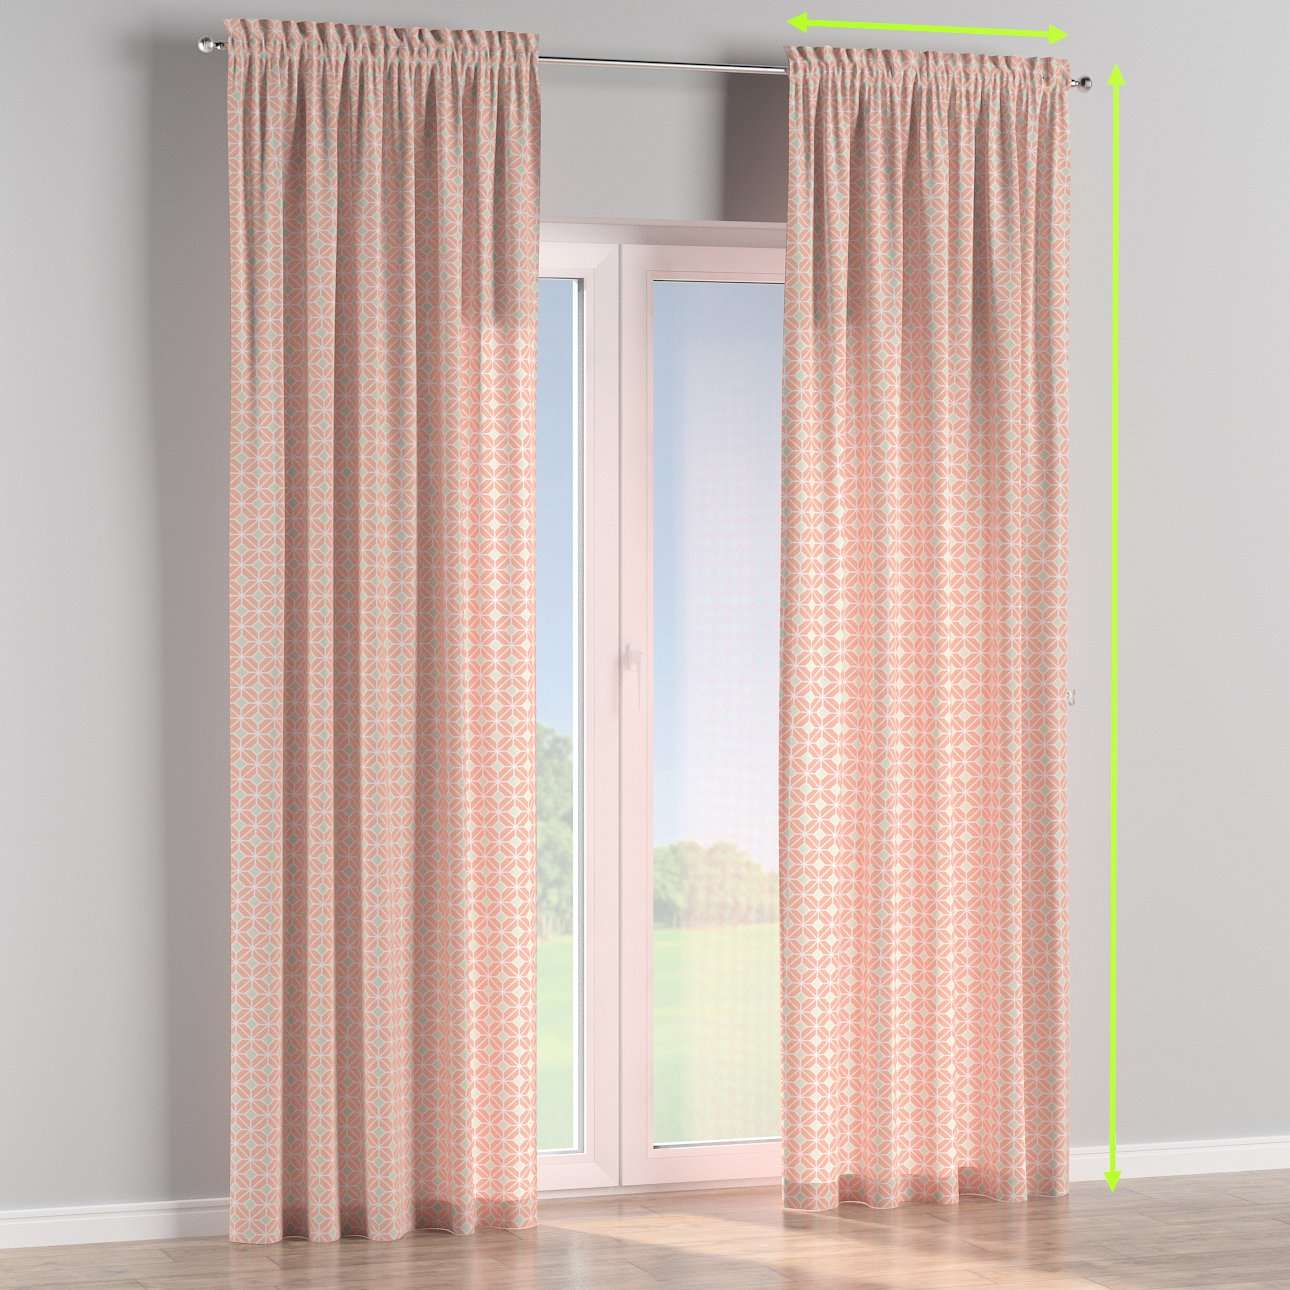 Slot and frill lined curtains in collection Geometric, fabric: 141-48